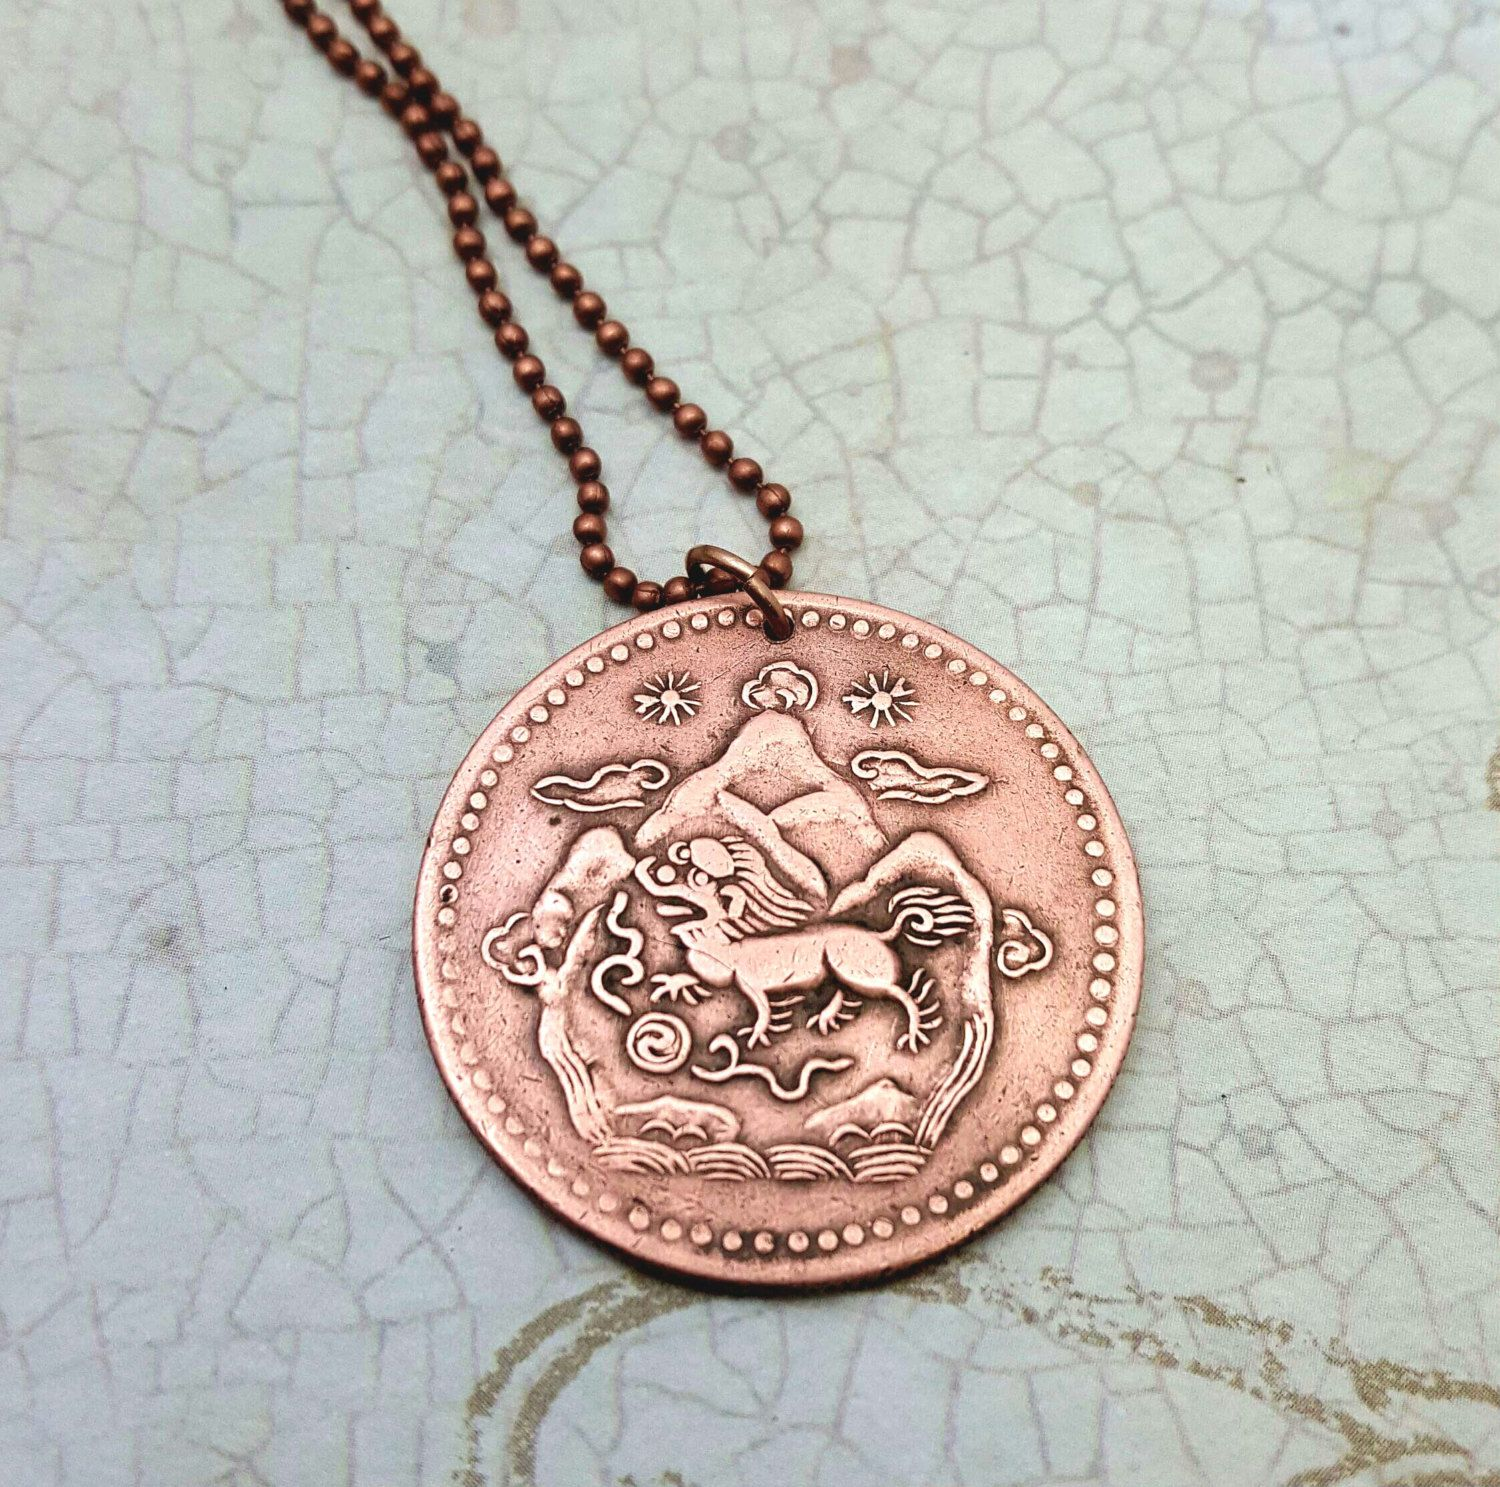 lioncoinnecklace fashion necklace en versus uk coin accessories store women lion pendant gb fashionjewellery for fjmt jewellery versace online